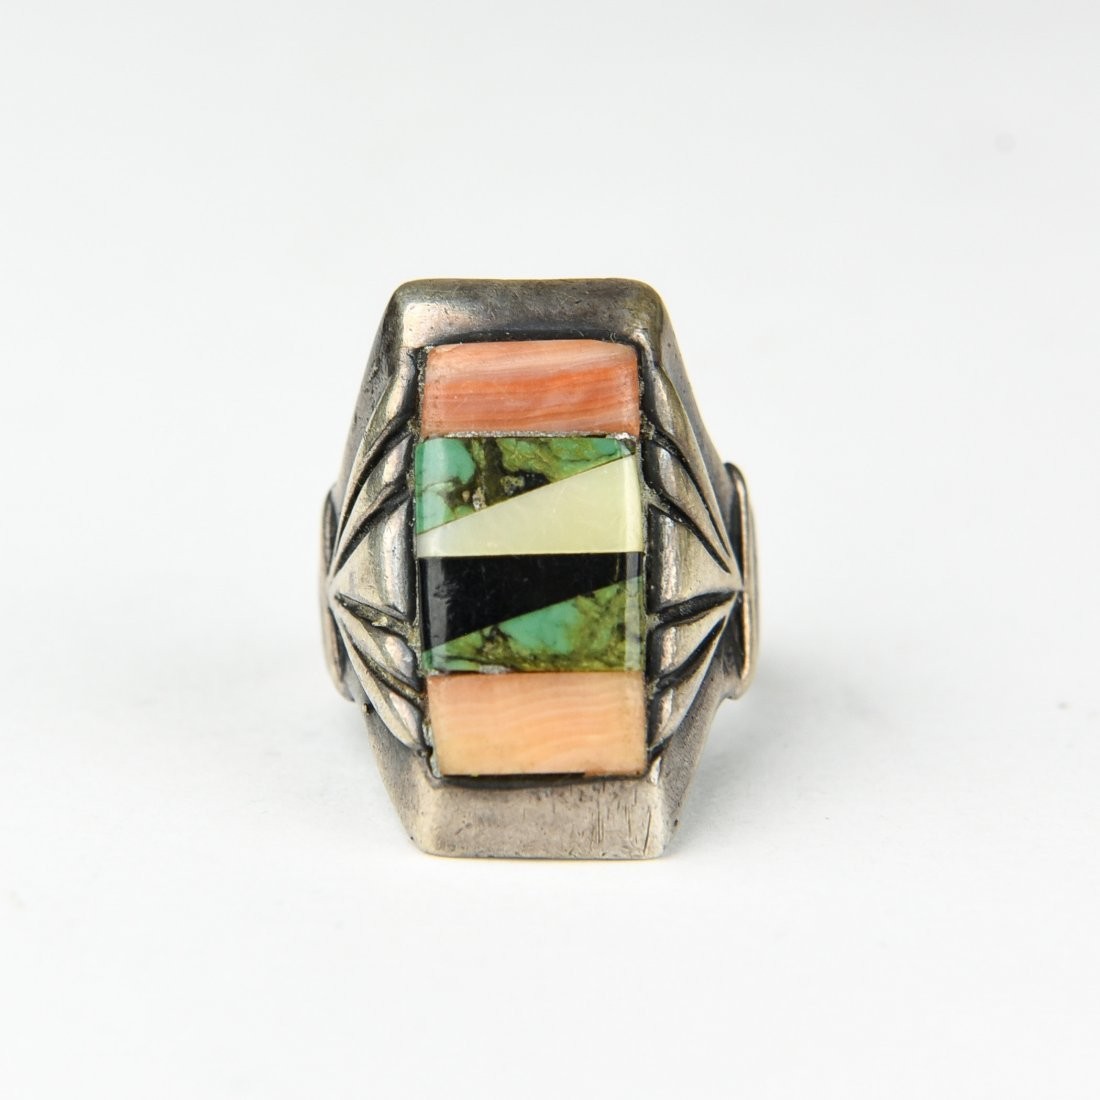 STERLING AND INLAID STONE RING